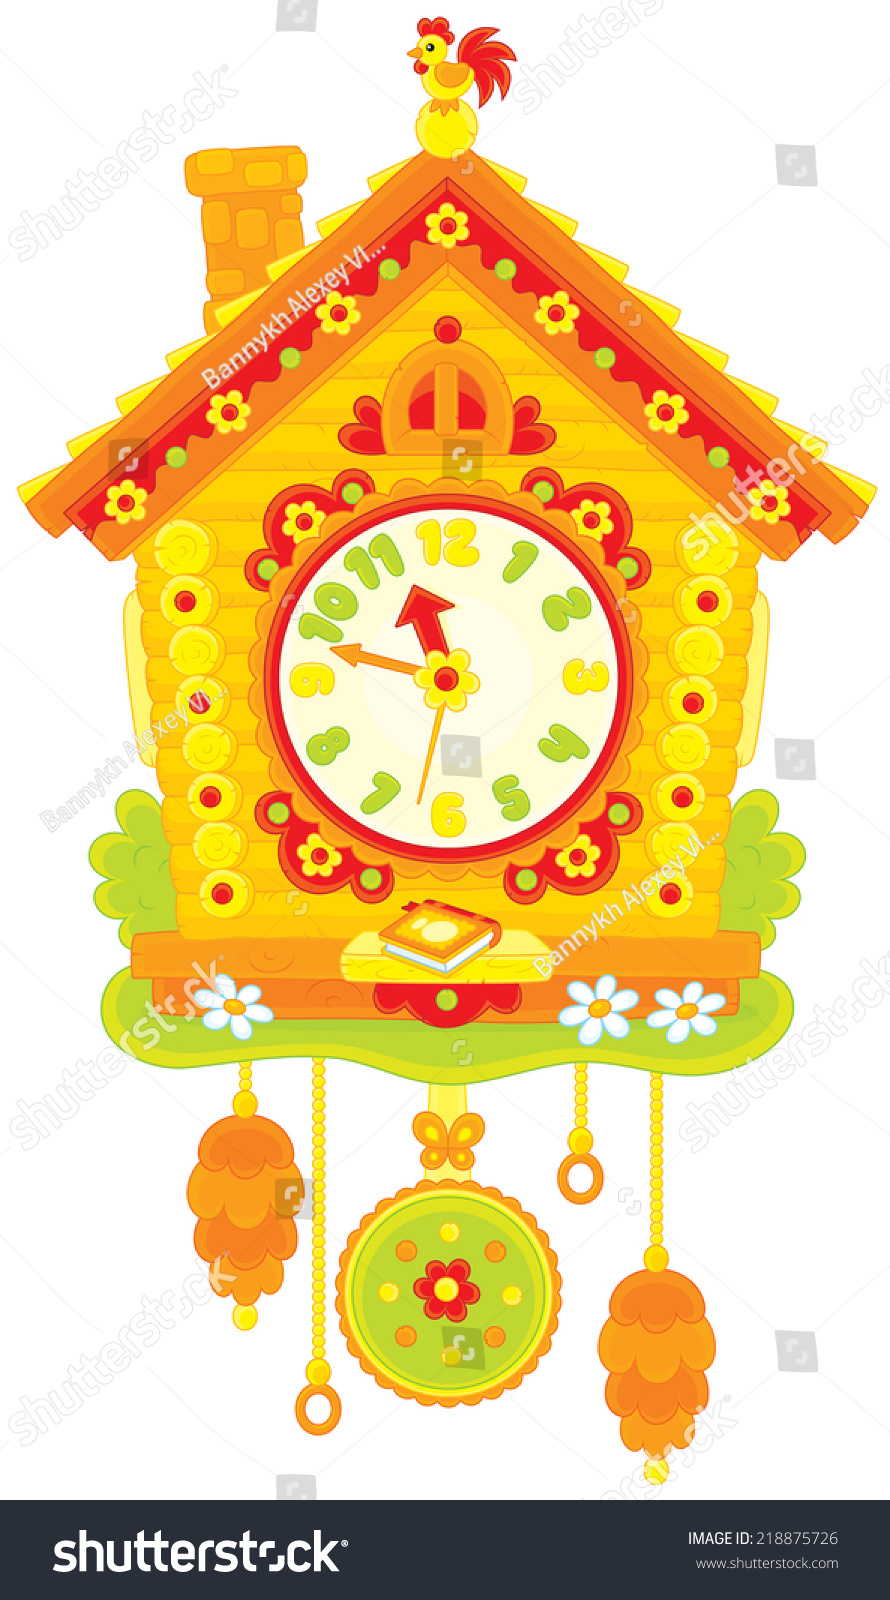 Cuckoo clock stock vector illustration 218875726 shutterstock - Colorful cuckoo clock ...